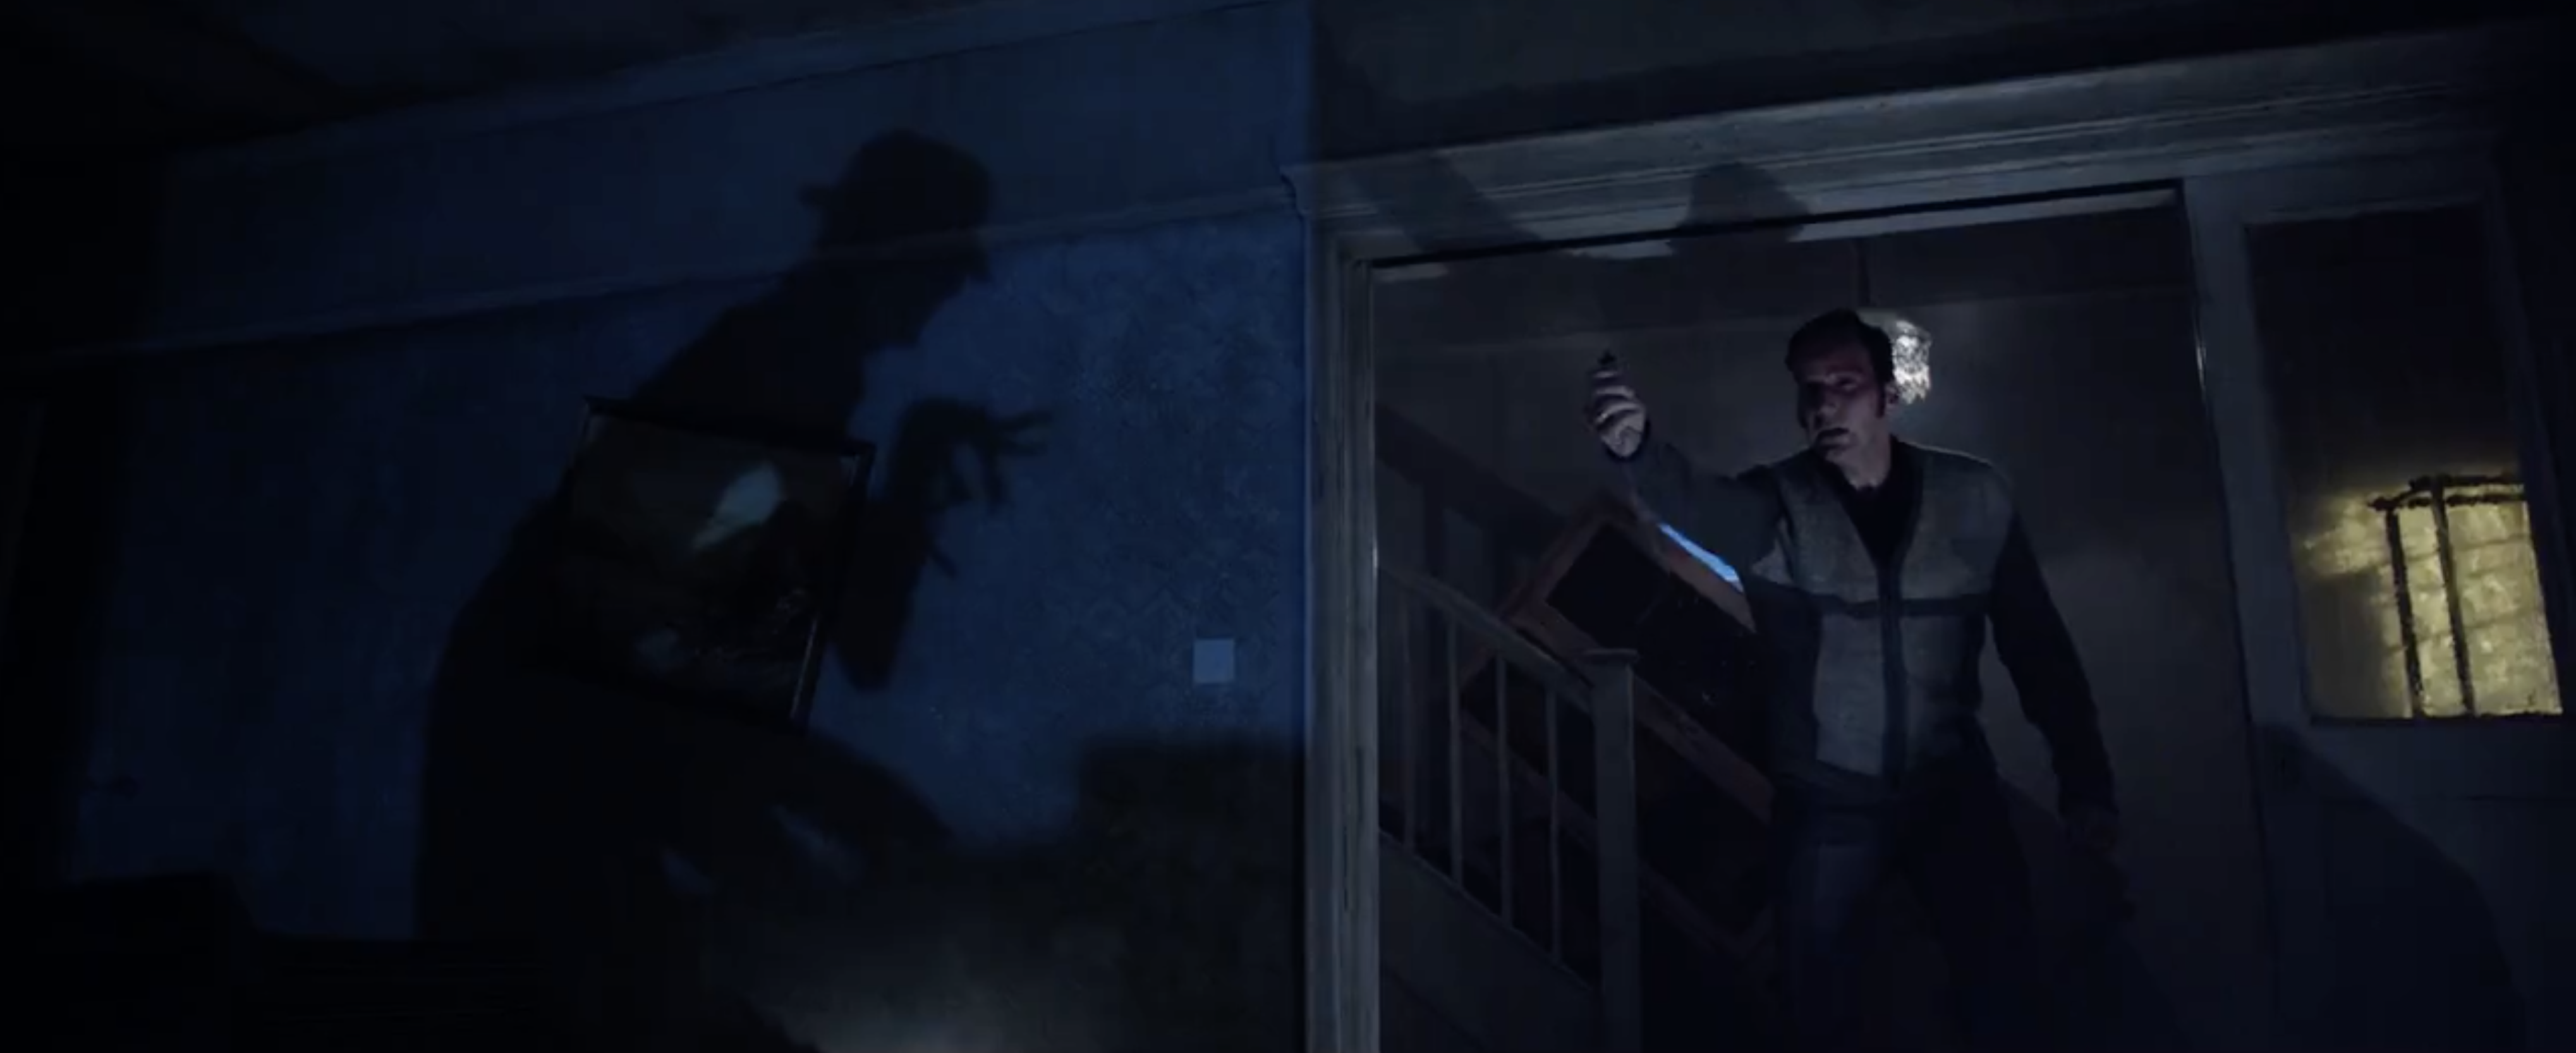 The Conjuring 2 Trailer Is Here To Haunt You